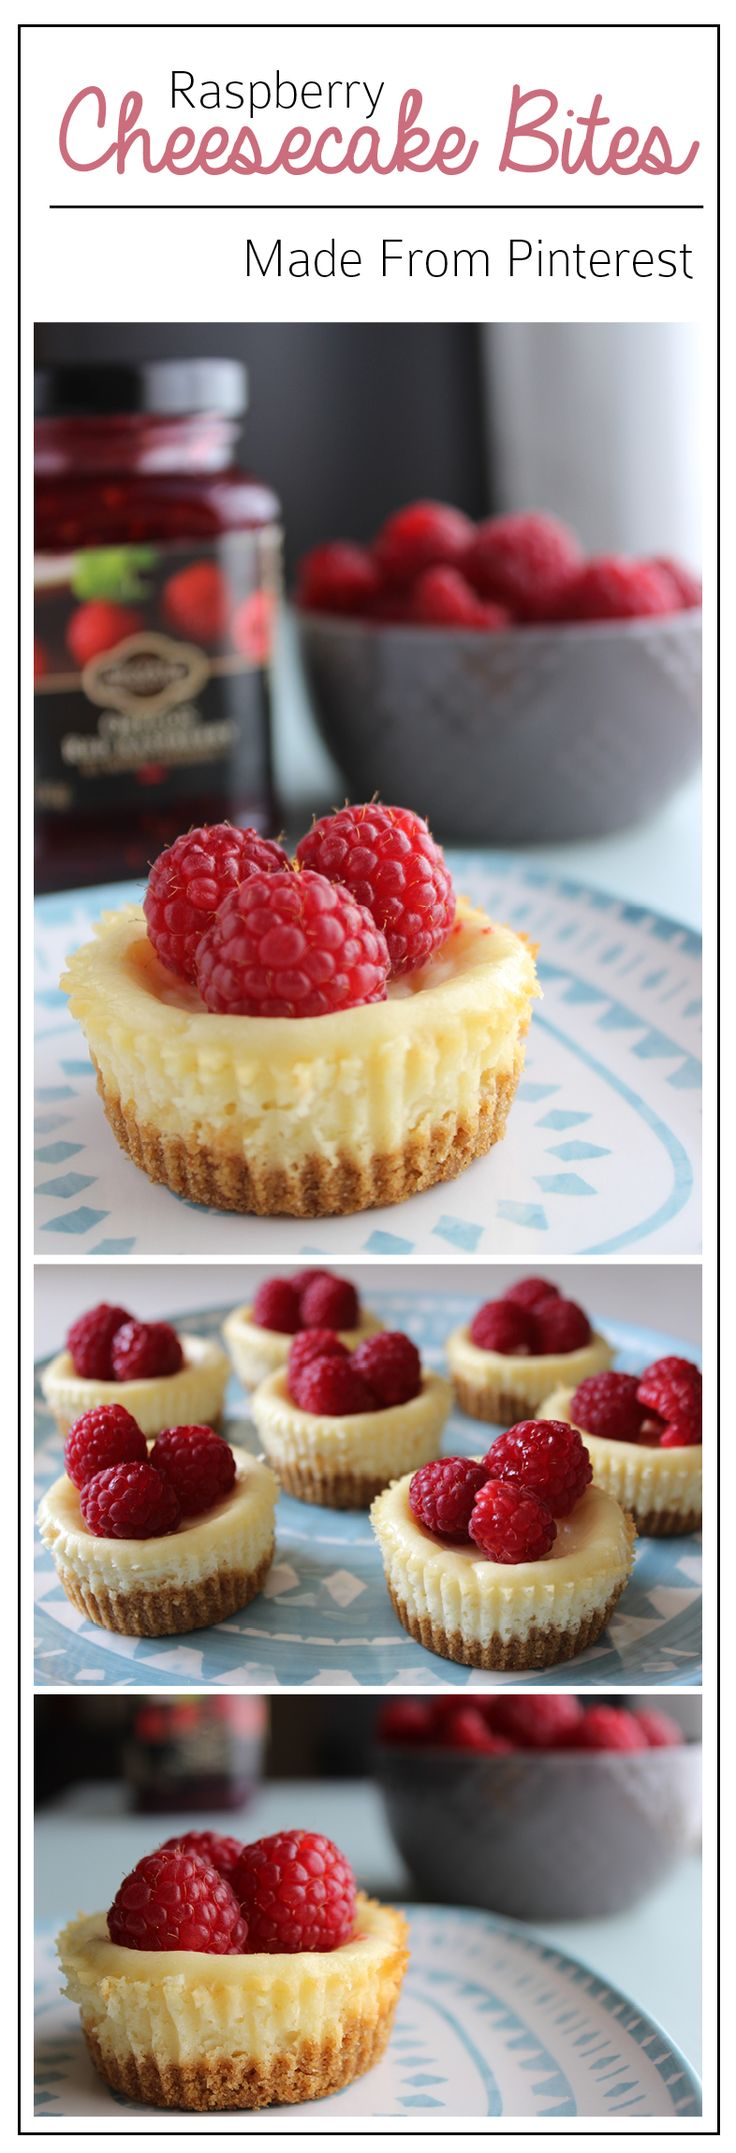 This cheesecake bites recipe is soooo creamy and delicious! You can prep these bites a day or two before your party and top them with fresh raspberries!